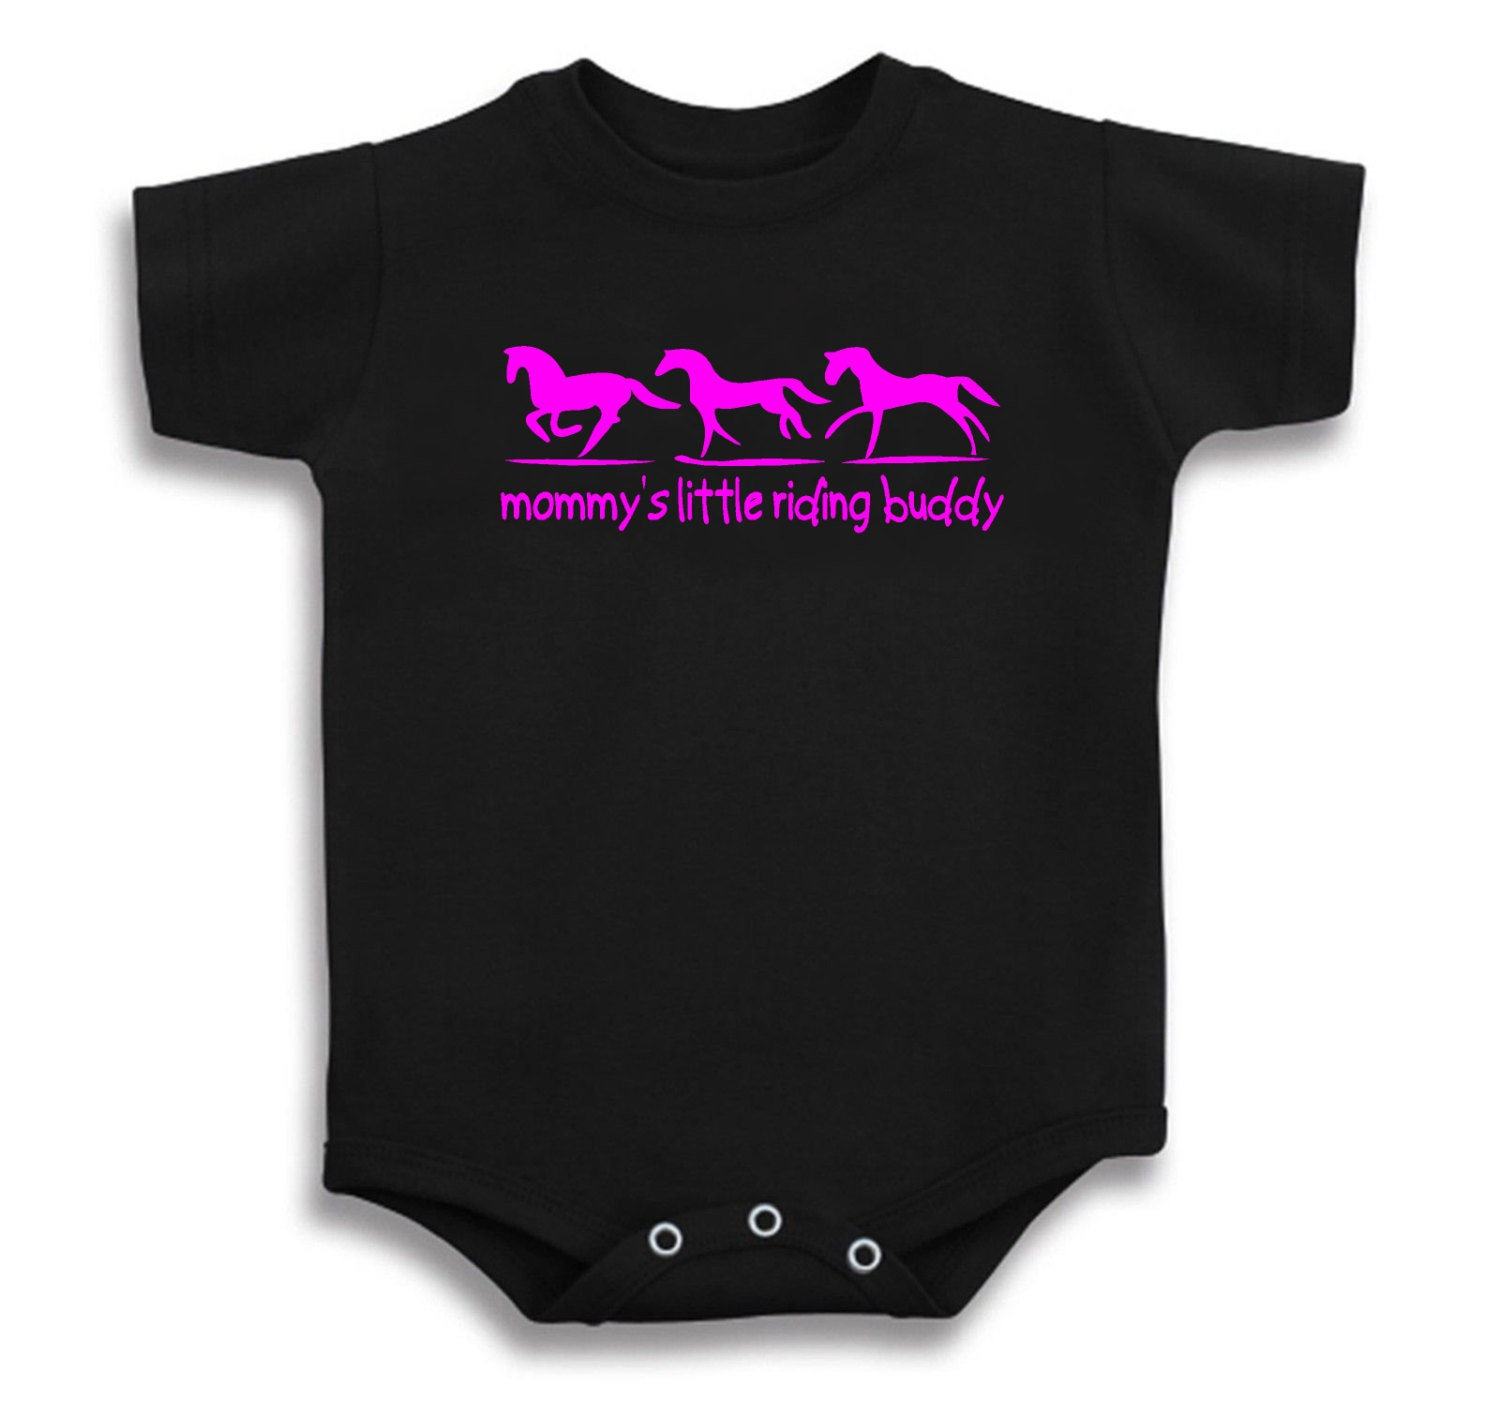 e515bcff6ff3a Mommy's Little Riding Buddy Horse Baby T Shirt One Piece Creeper onesie  Infant Just Ride Pony